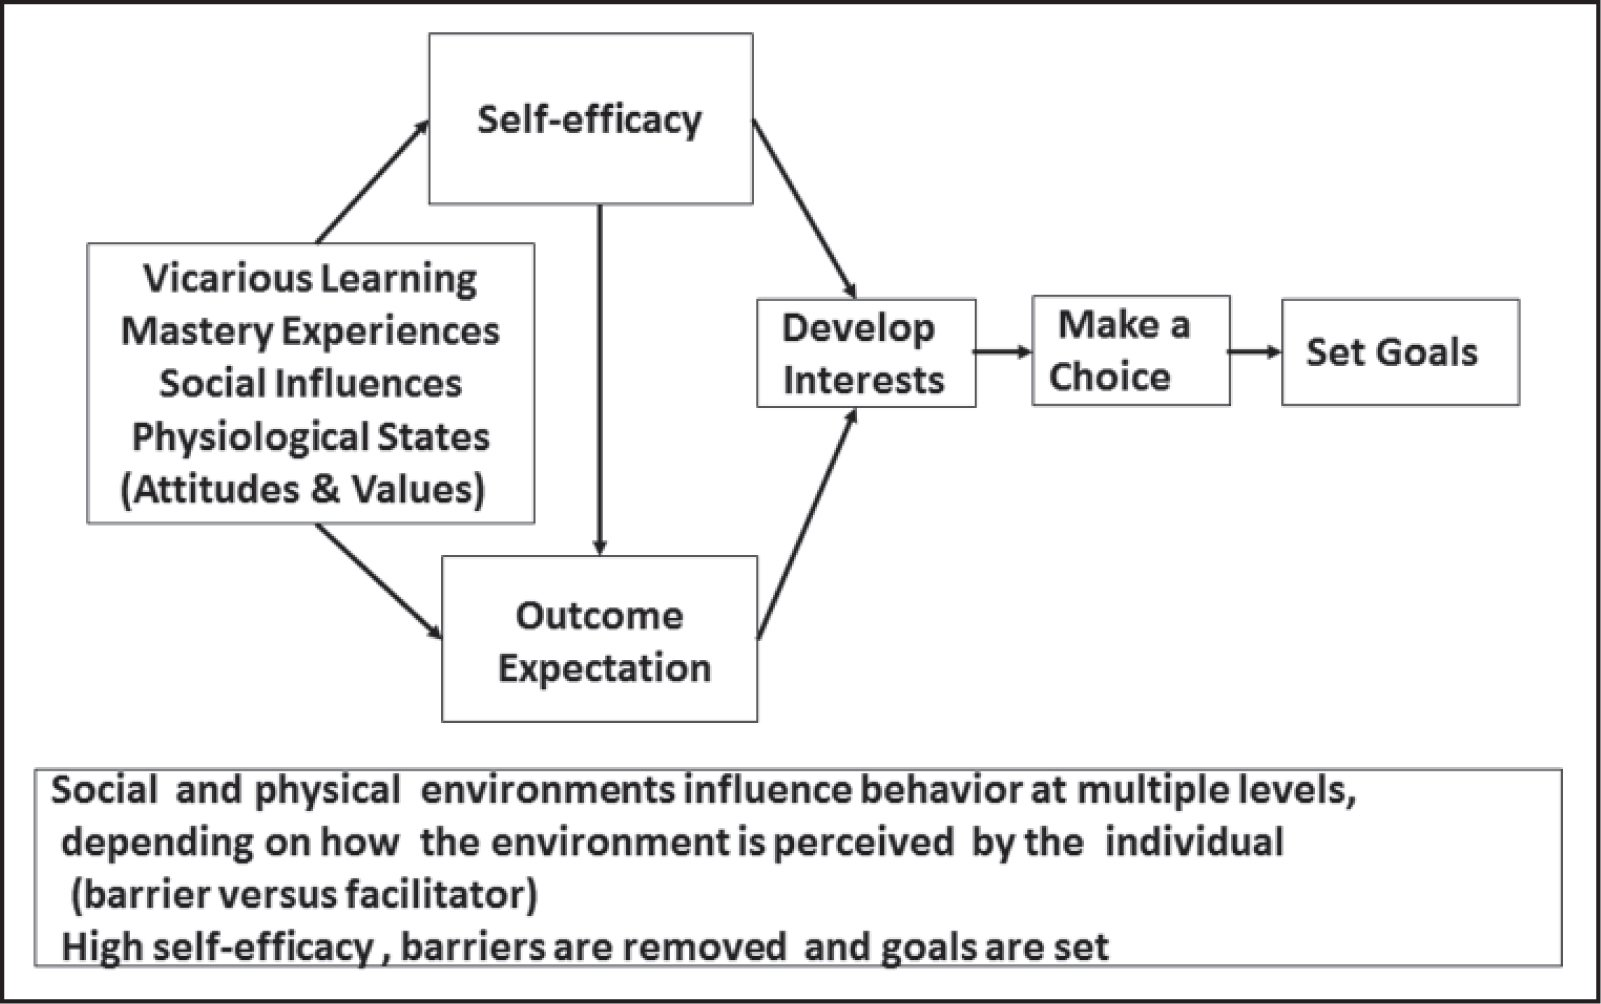 Conceptual framework for the social cognitive theory.